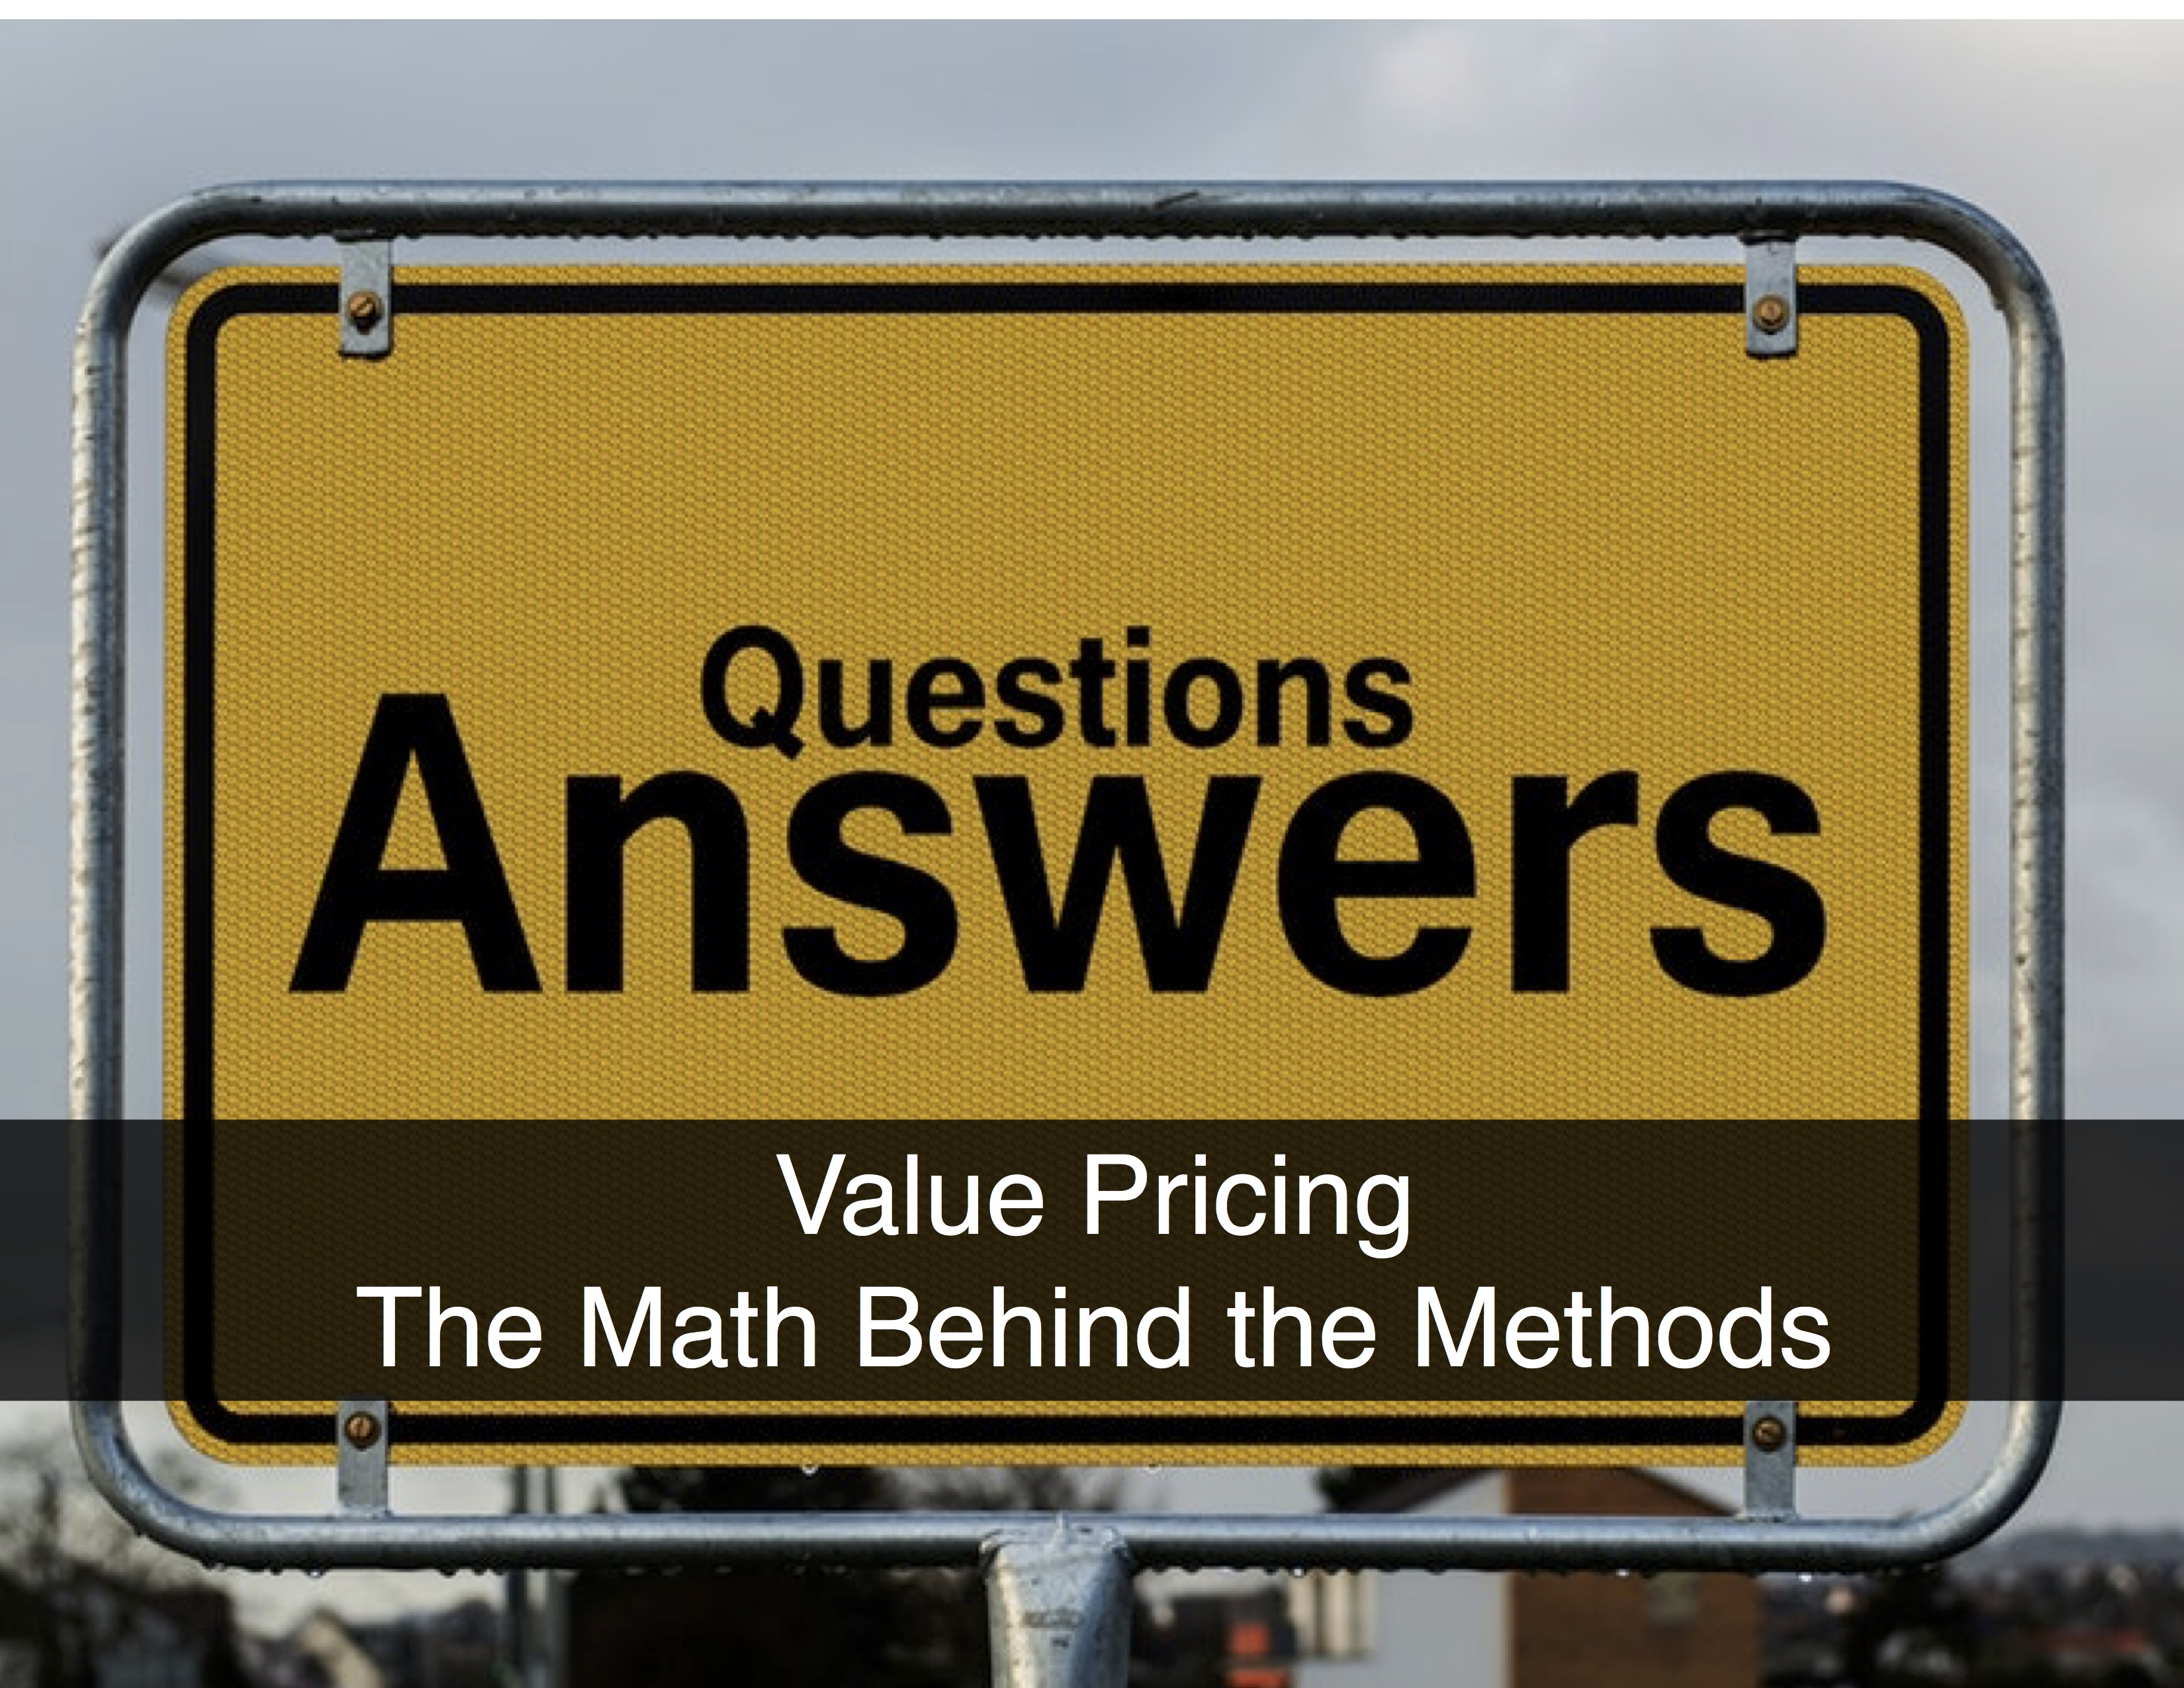 Value Pricing: The Math behind the Methods